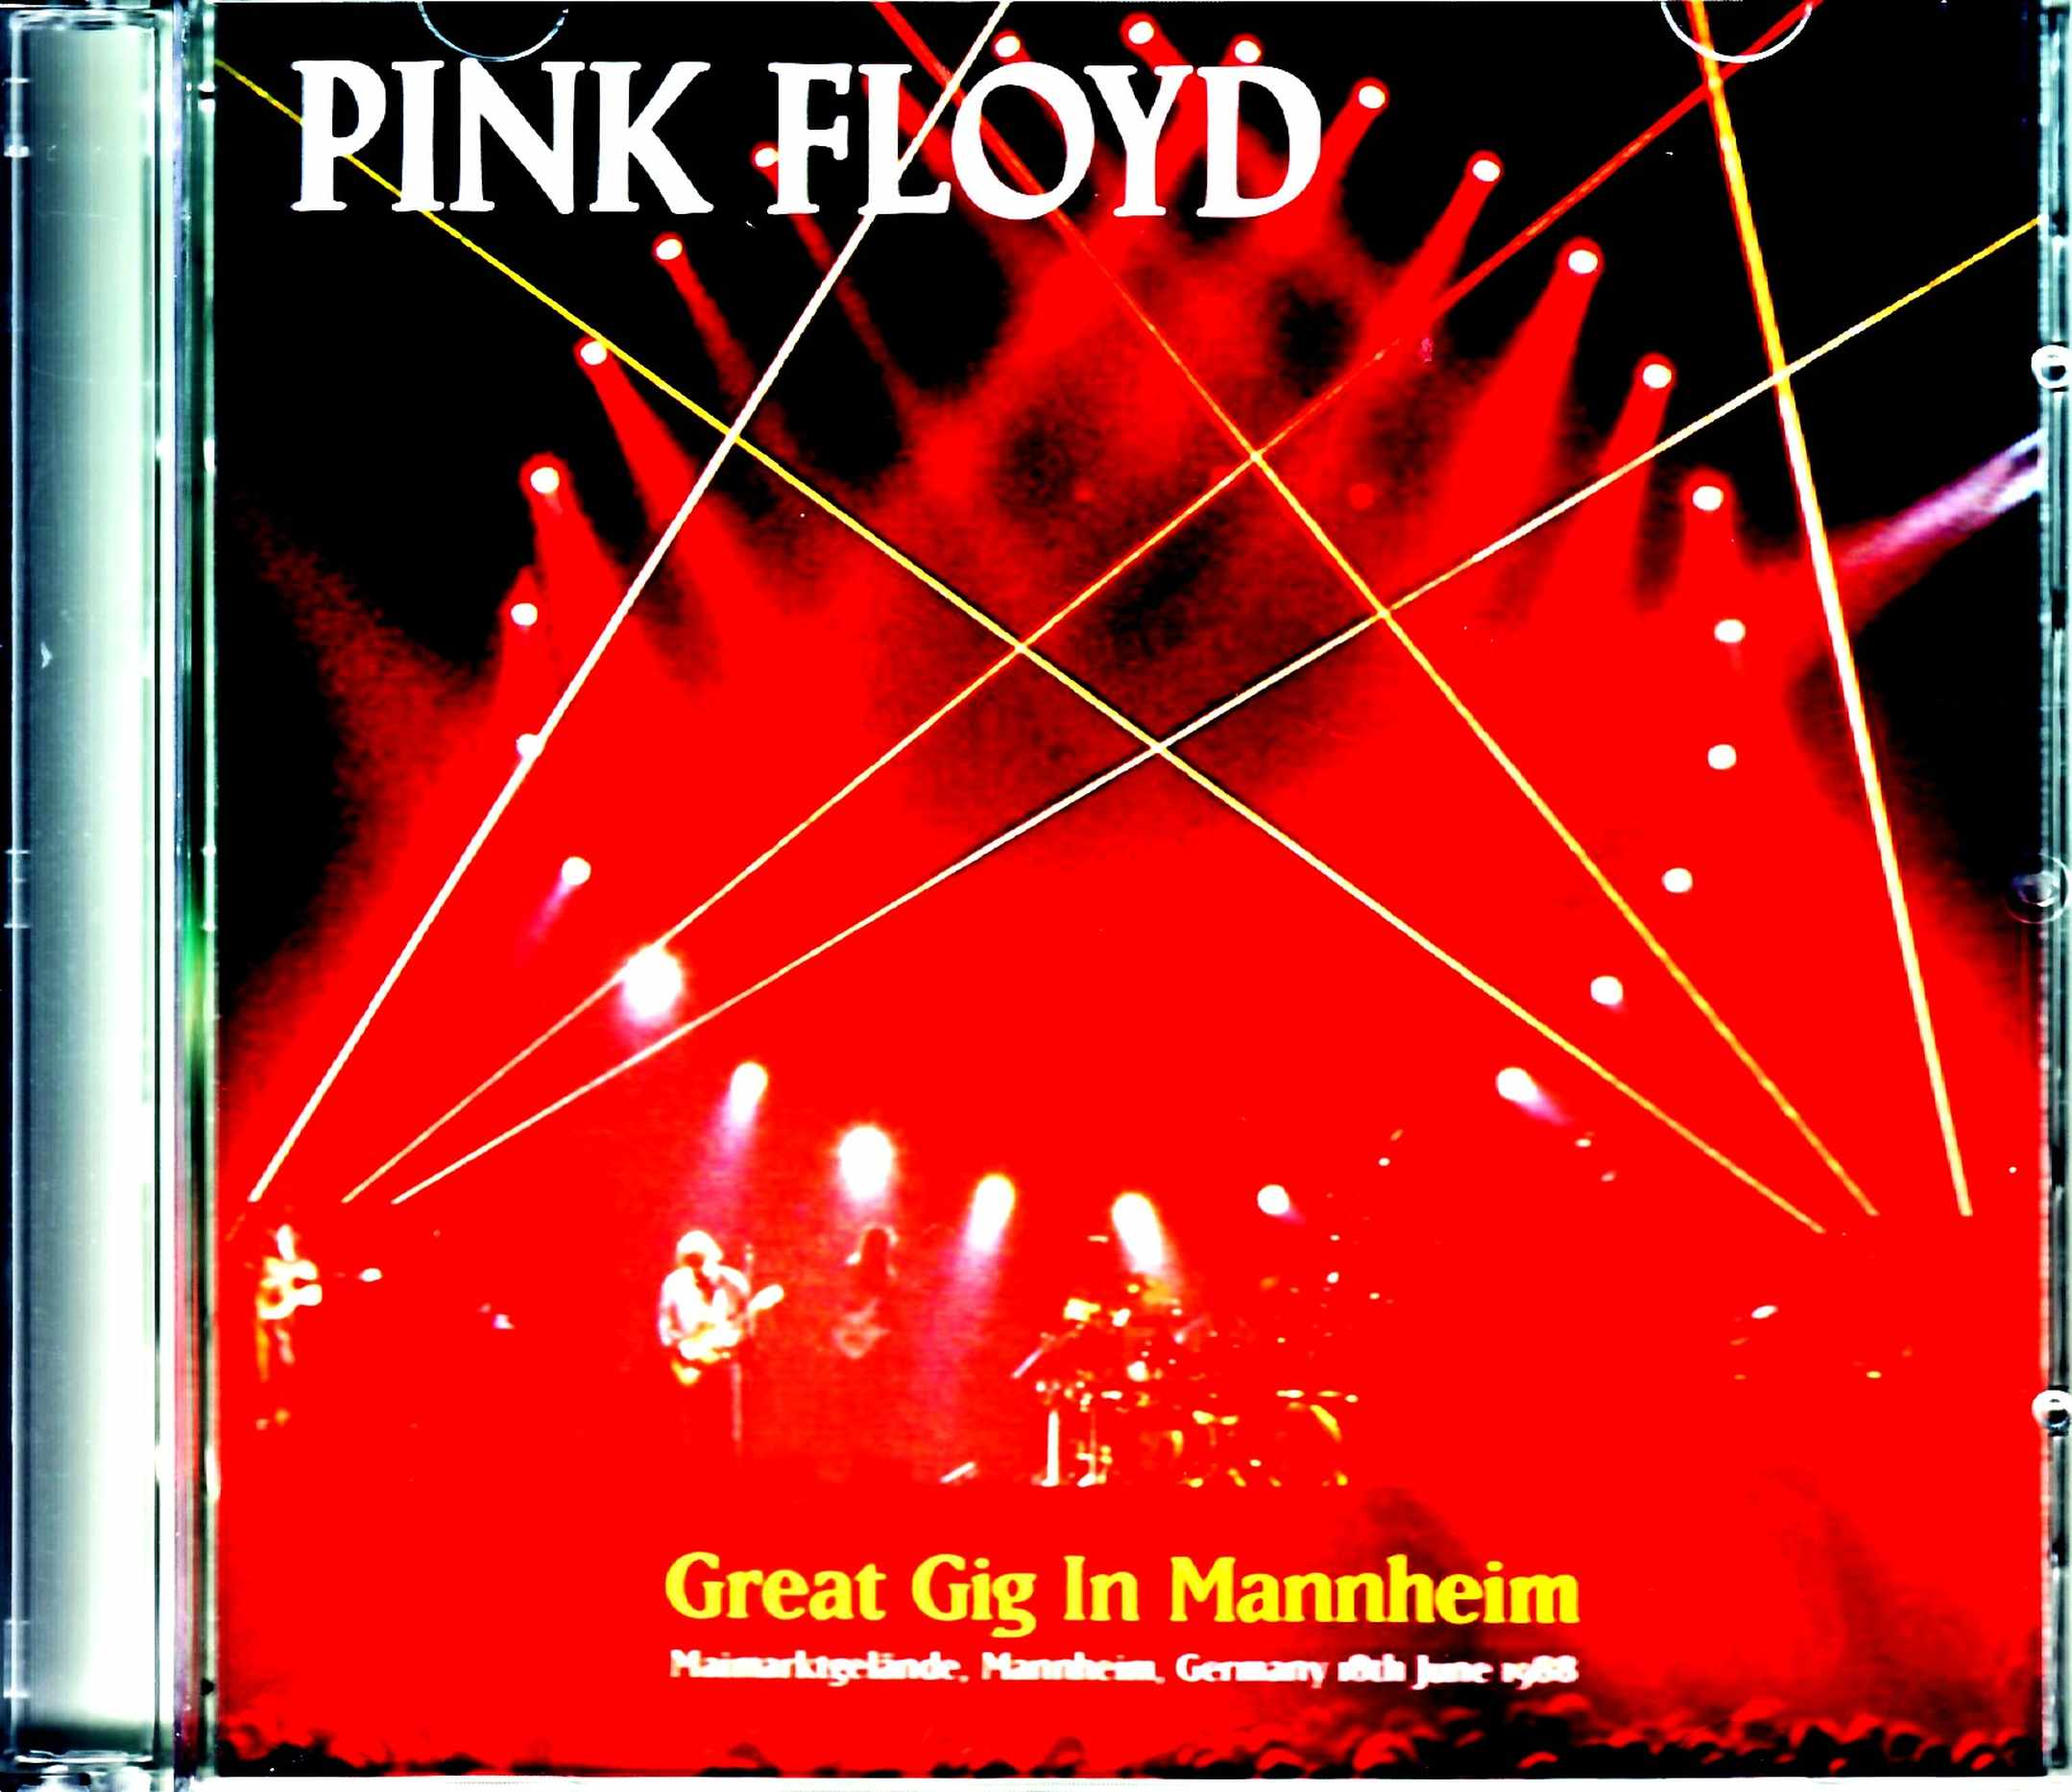 Pink Floyd ピンク・フロイド/Germany 6.18.1988 Complete